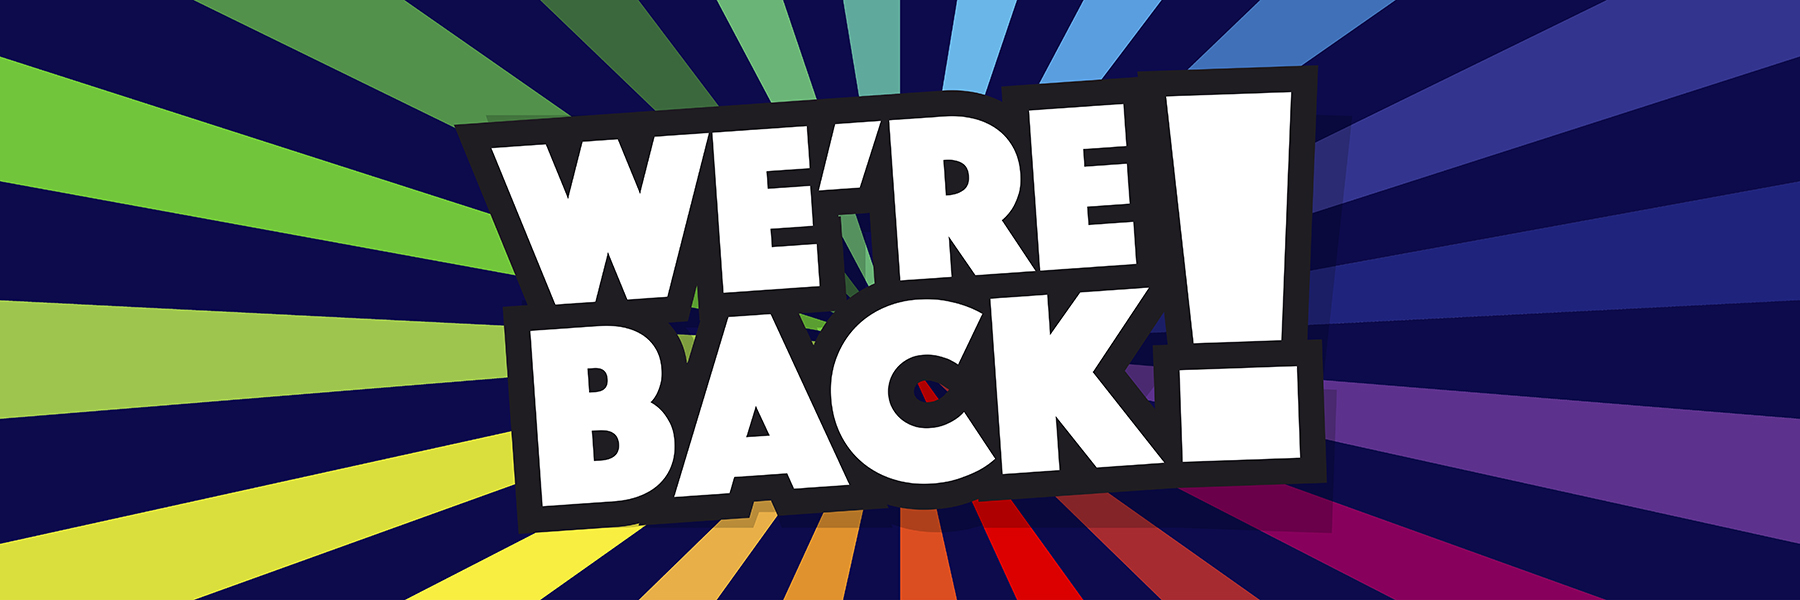 """""""We're Back"""" text graphic"""